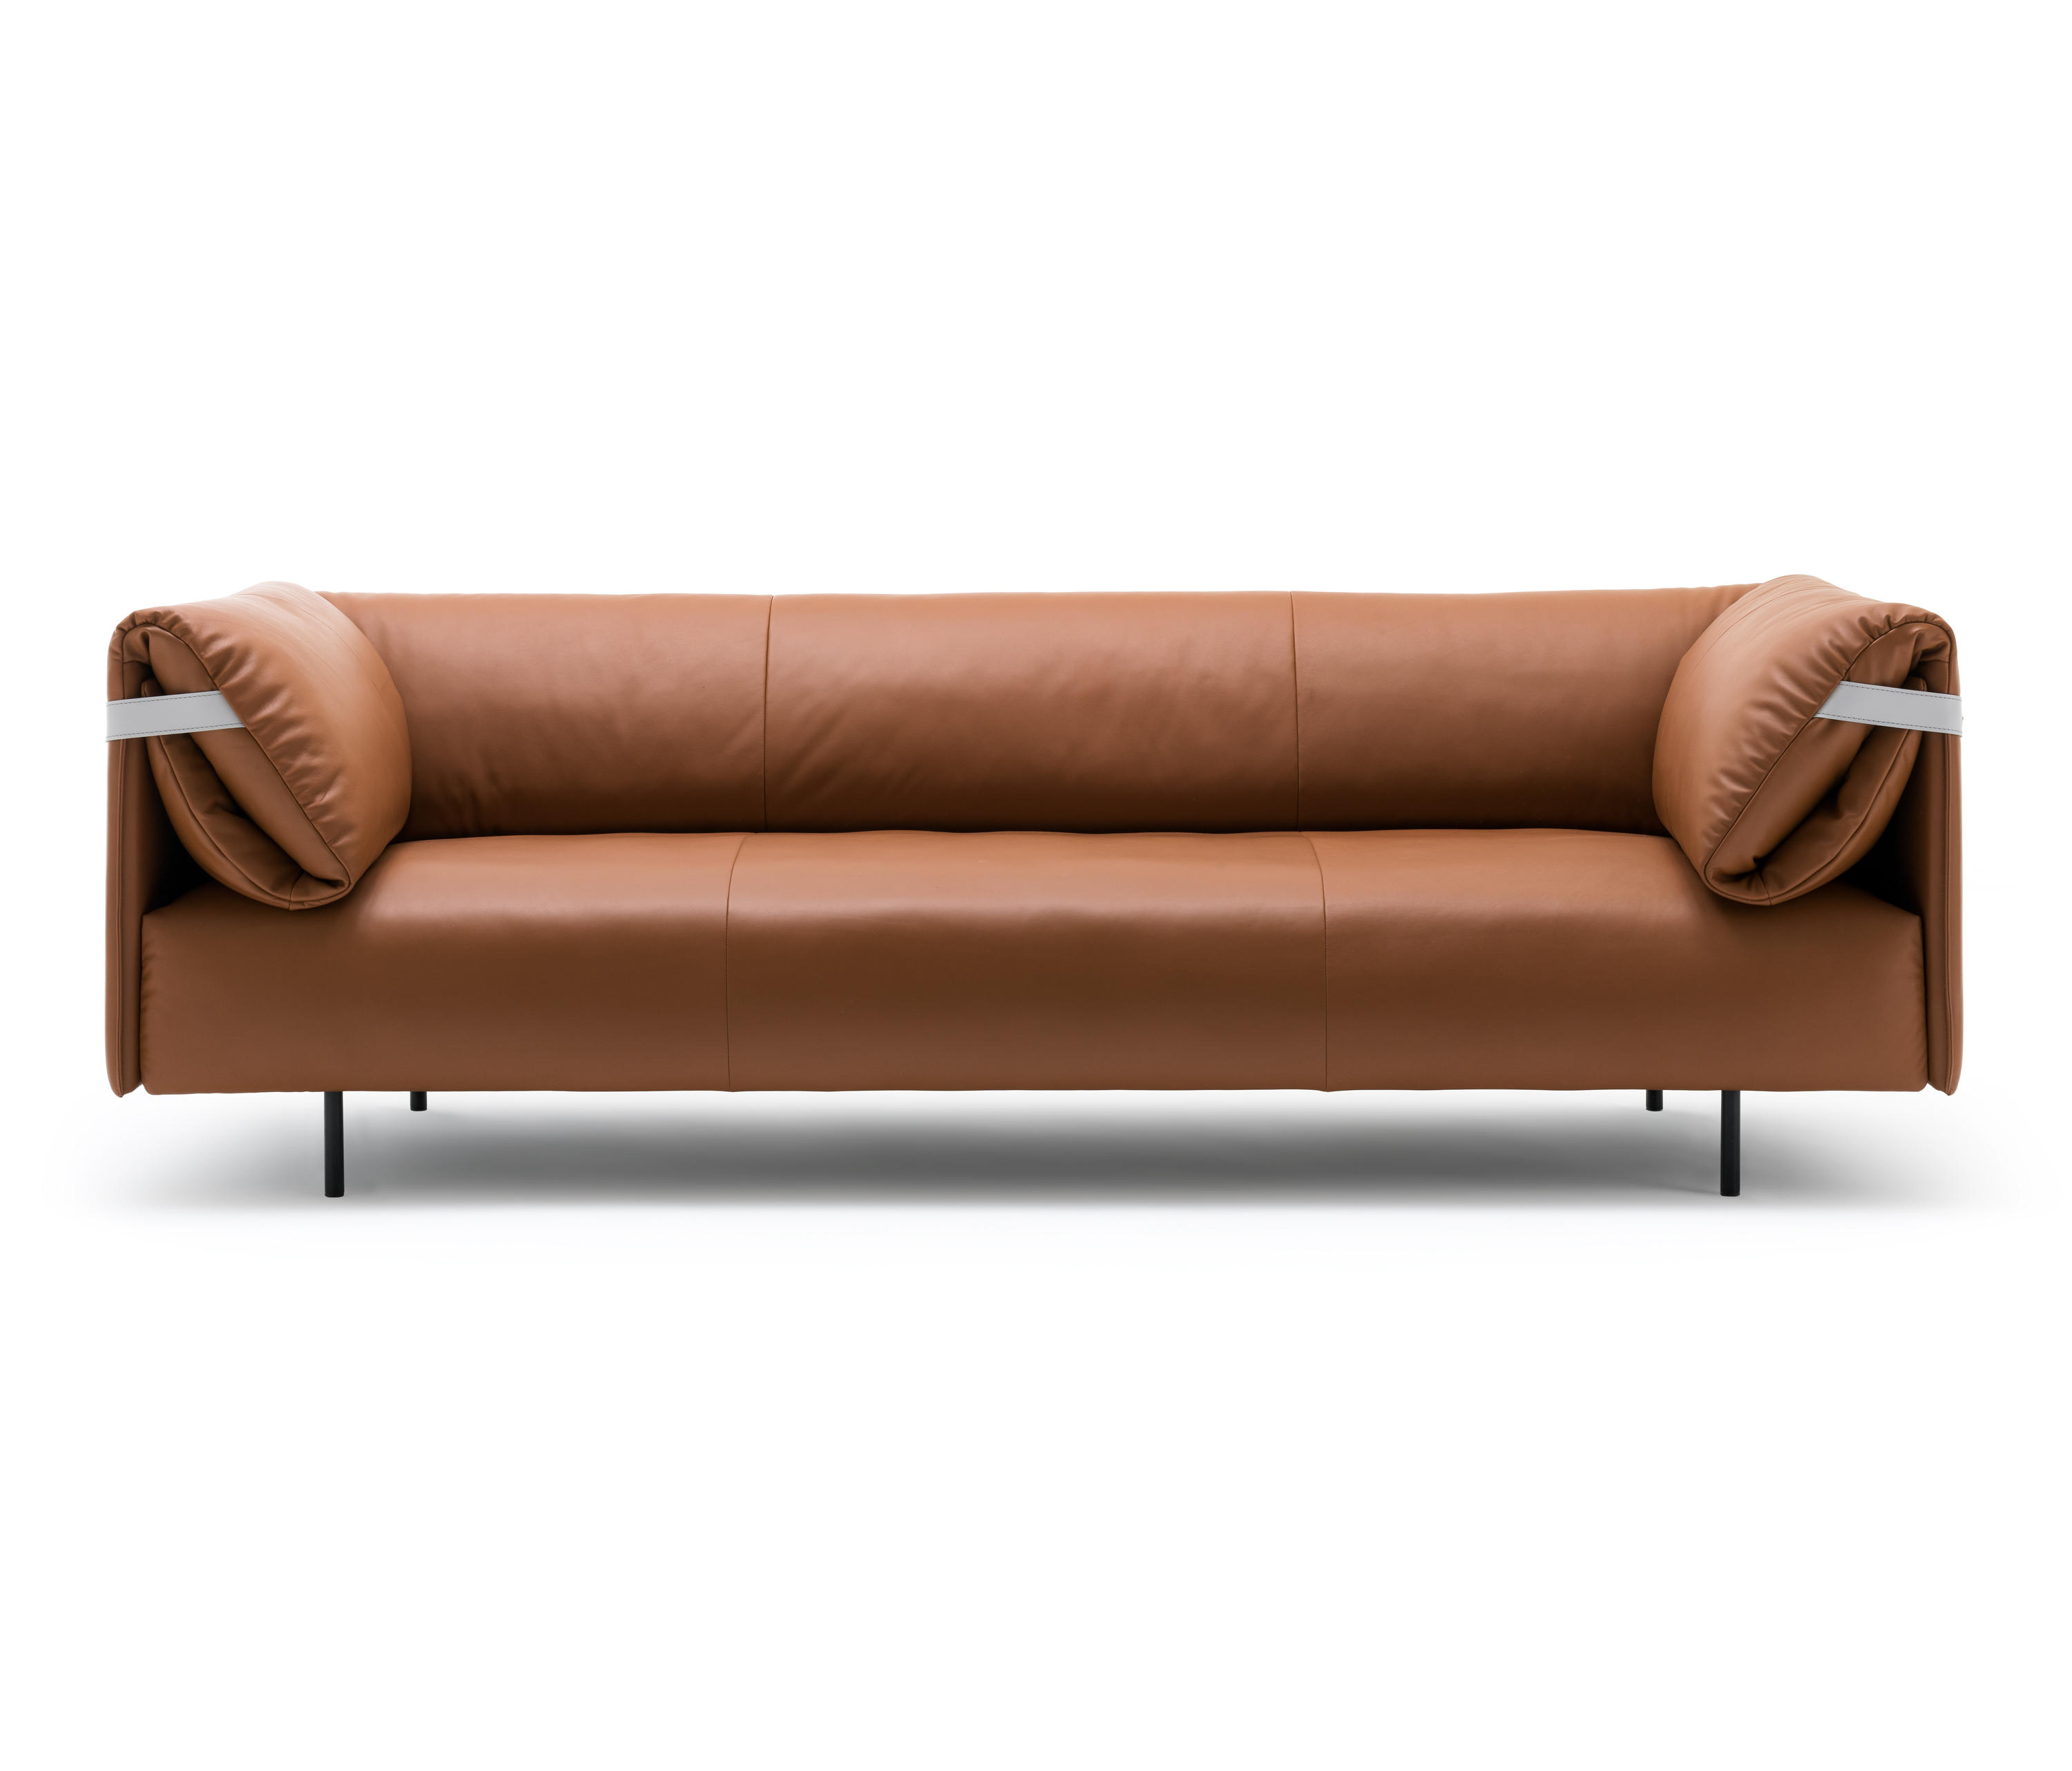 ROLF BENZ ALMA - Lounge sofas from Rolf Benz | Architonic